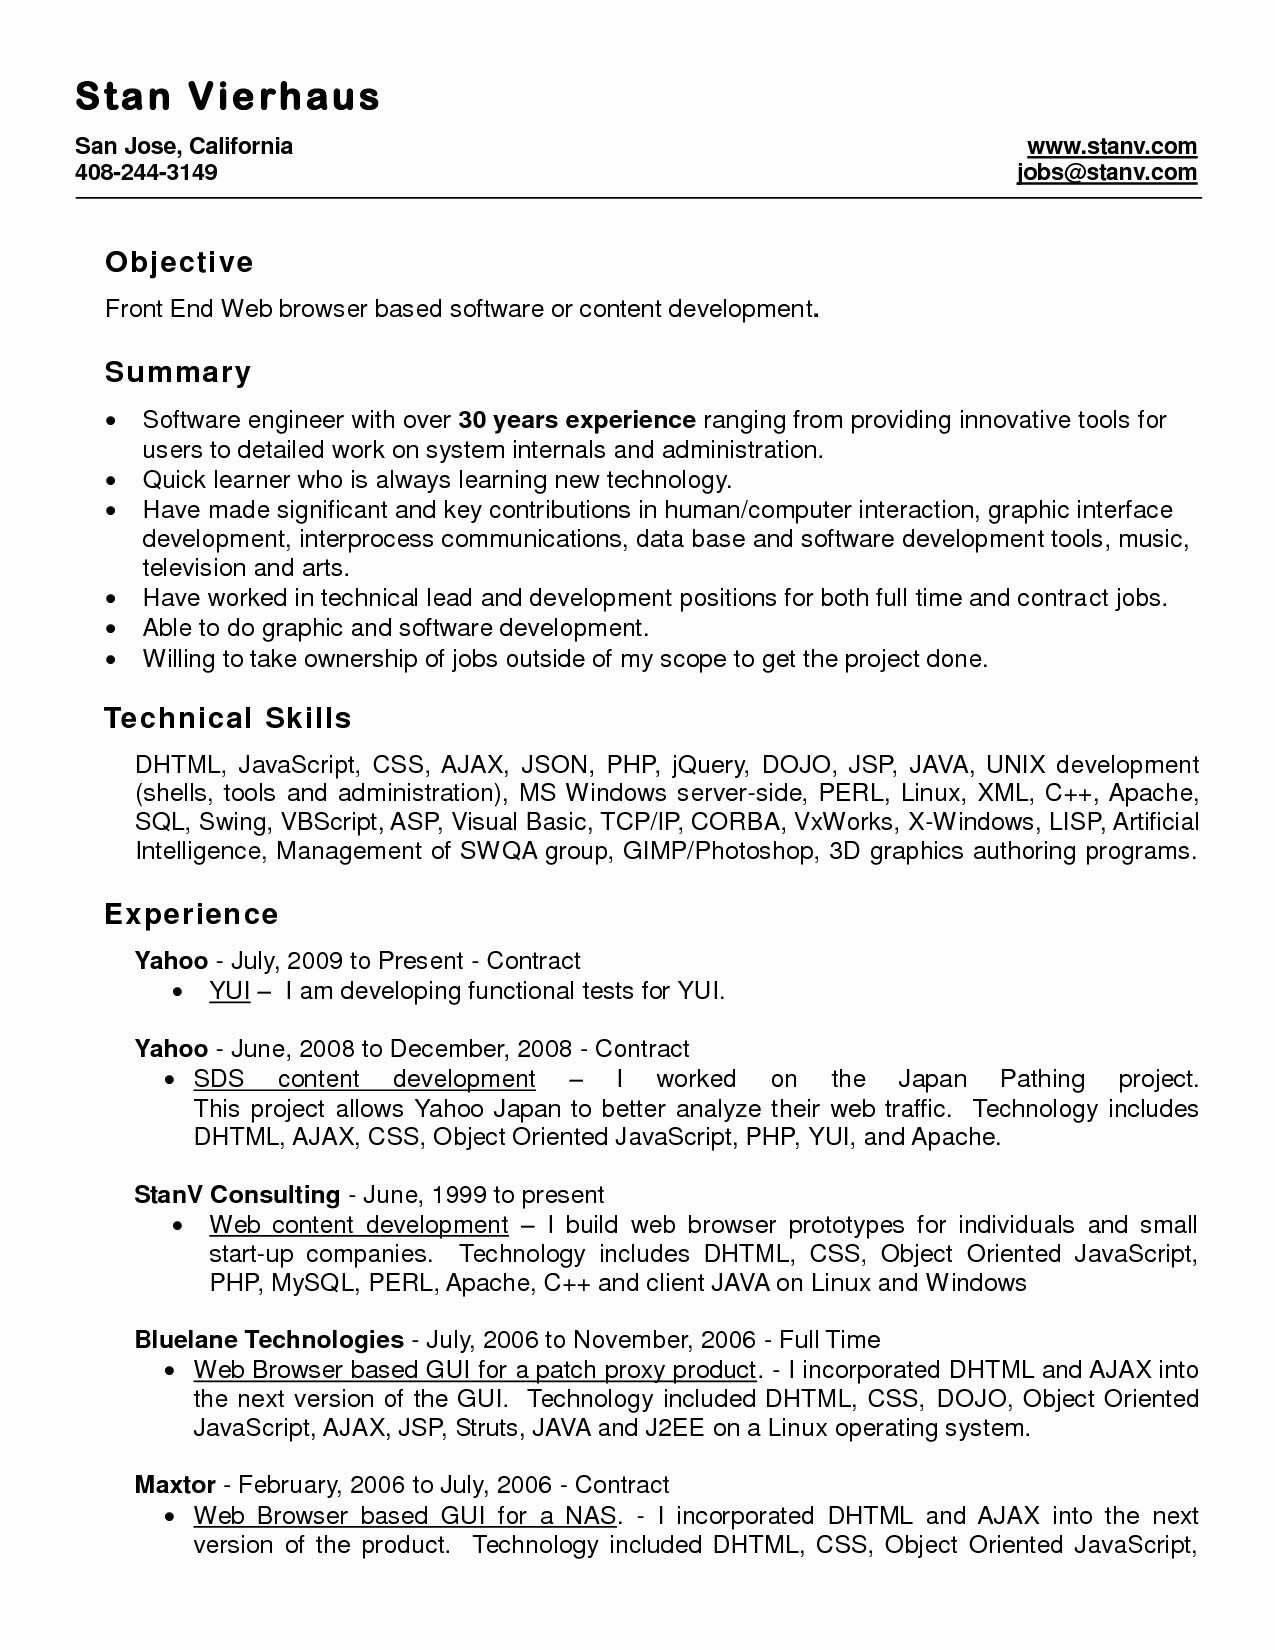 Ms Word Template for Resume Inspirational Resume Template Microsoft Word 2017